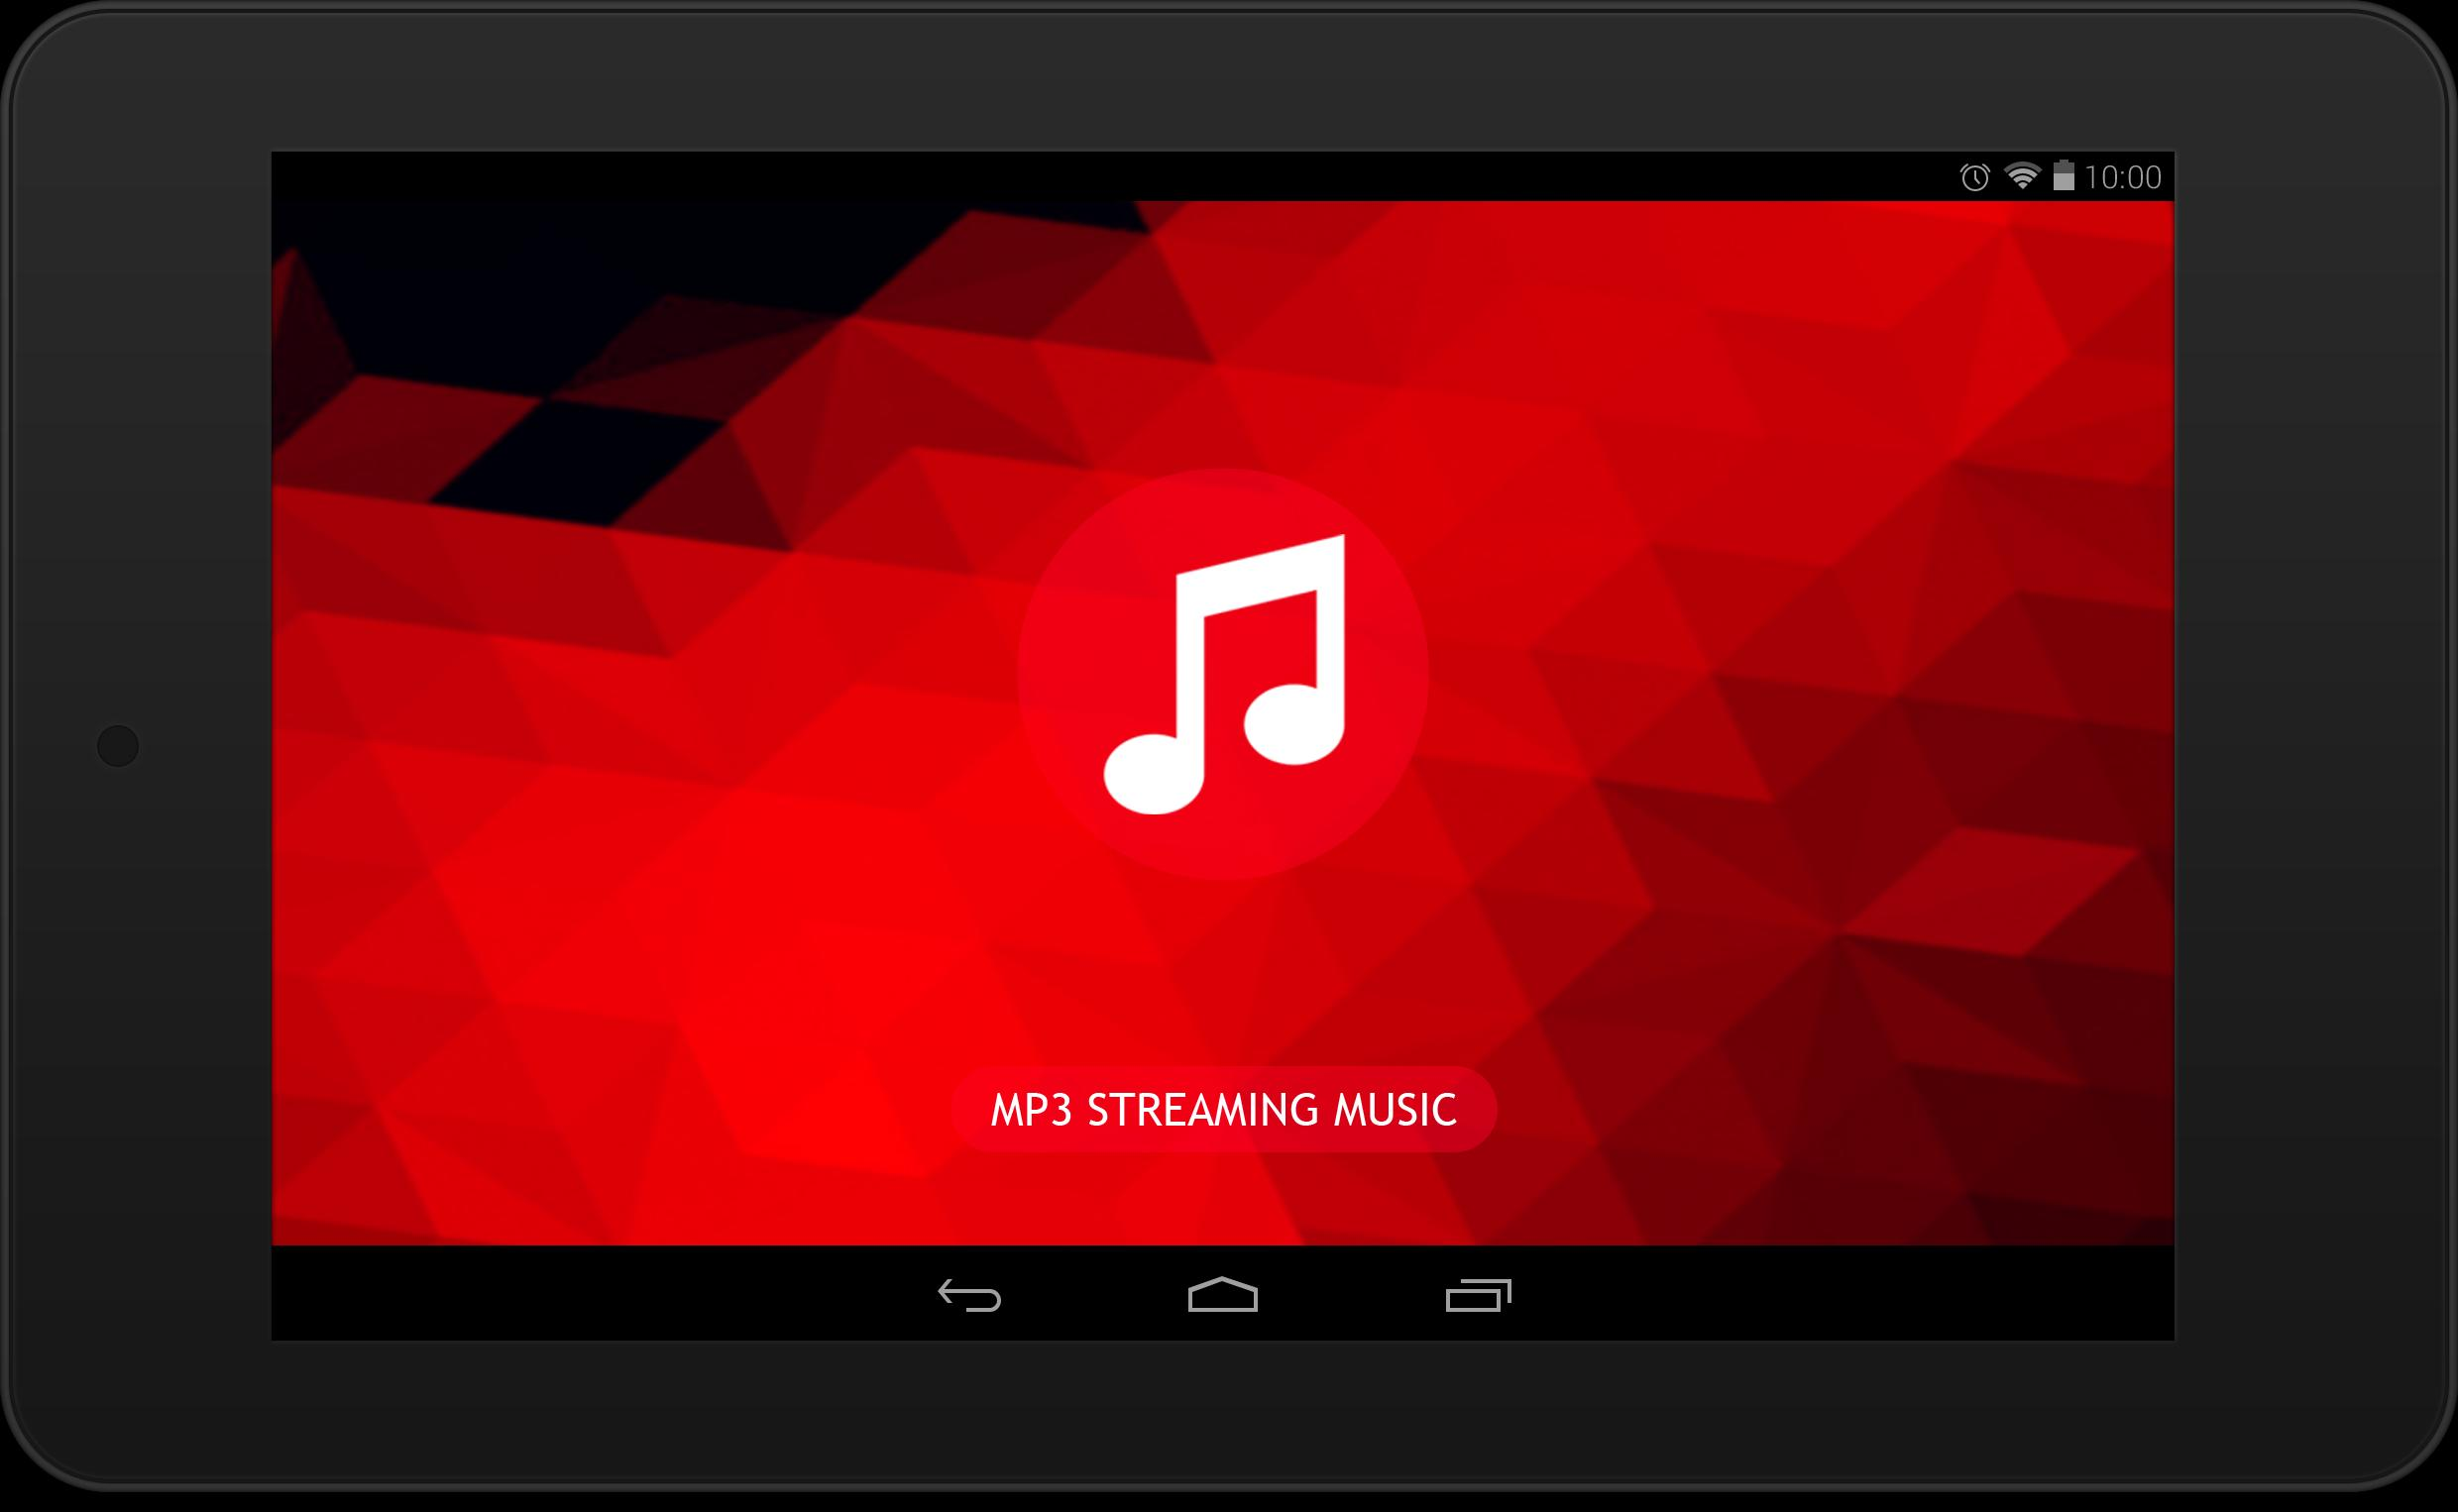 Mukesh Hit Songs for Android - APK Download